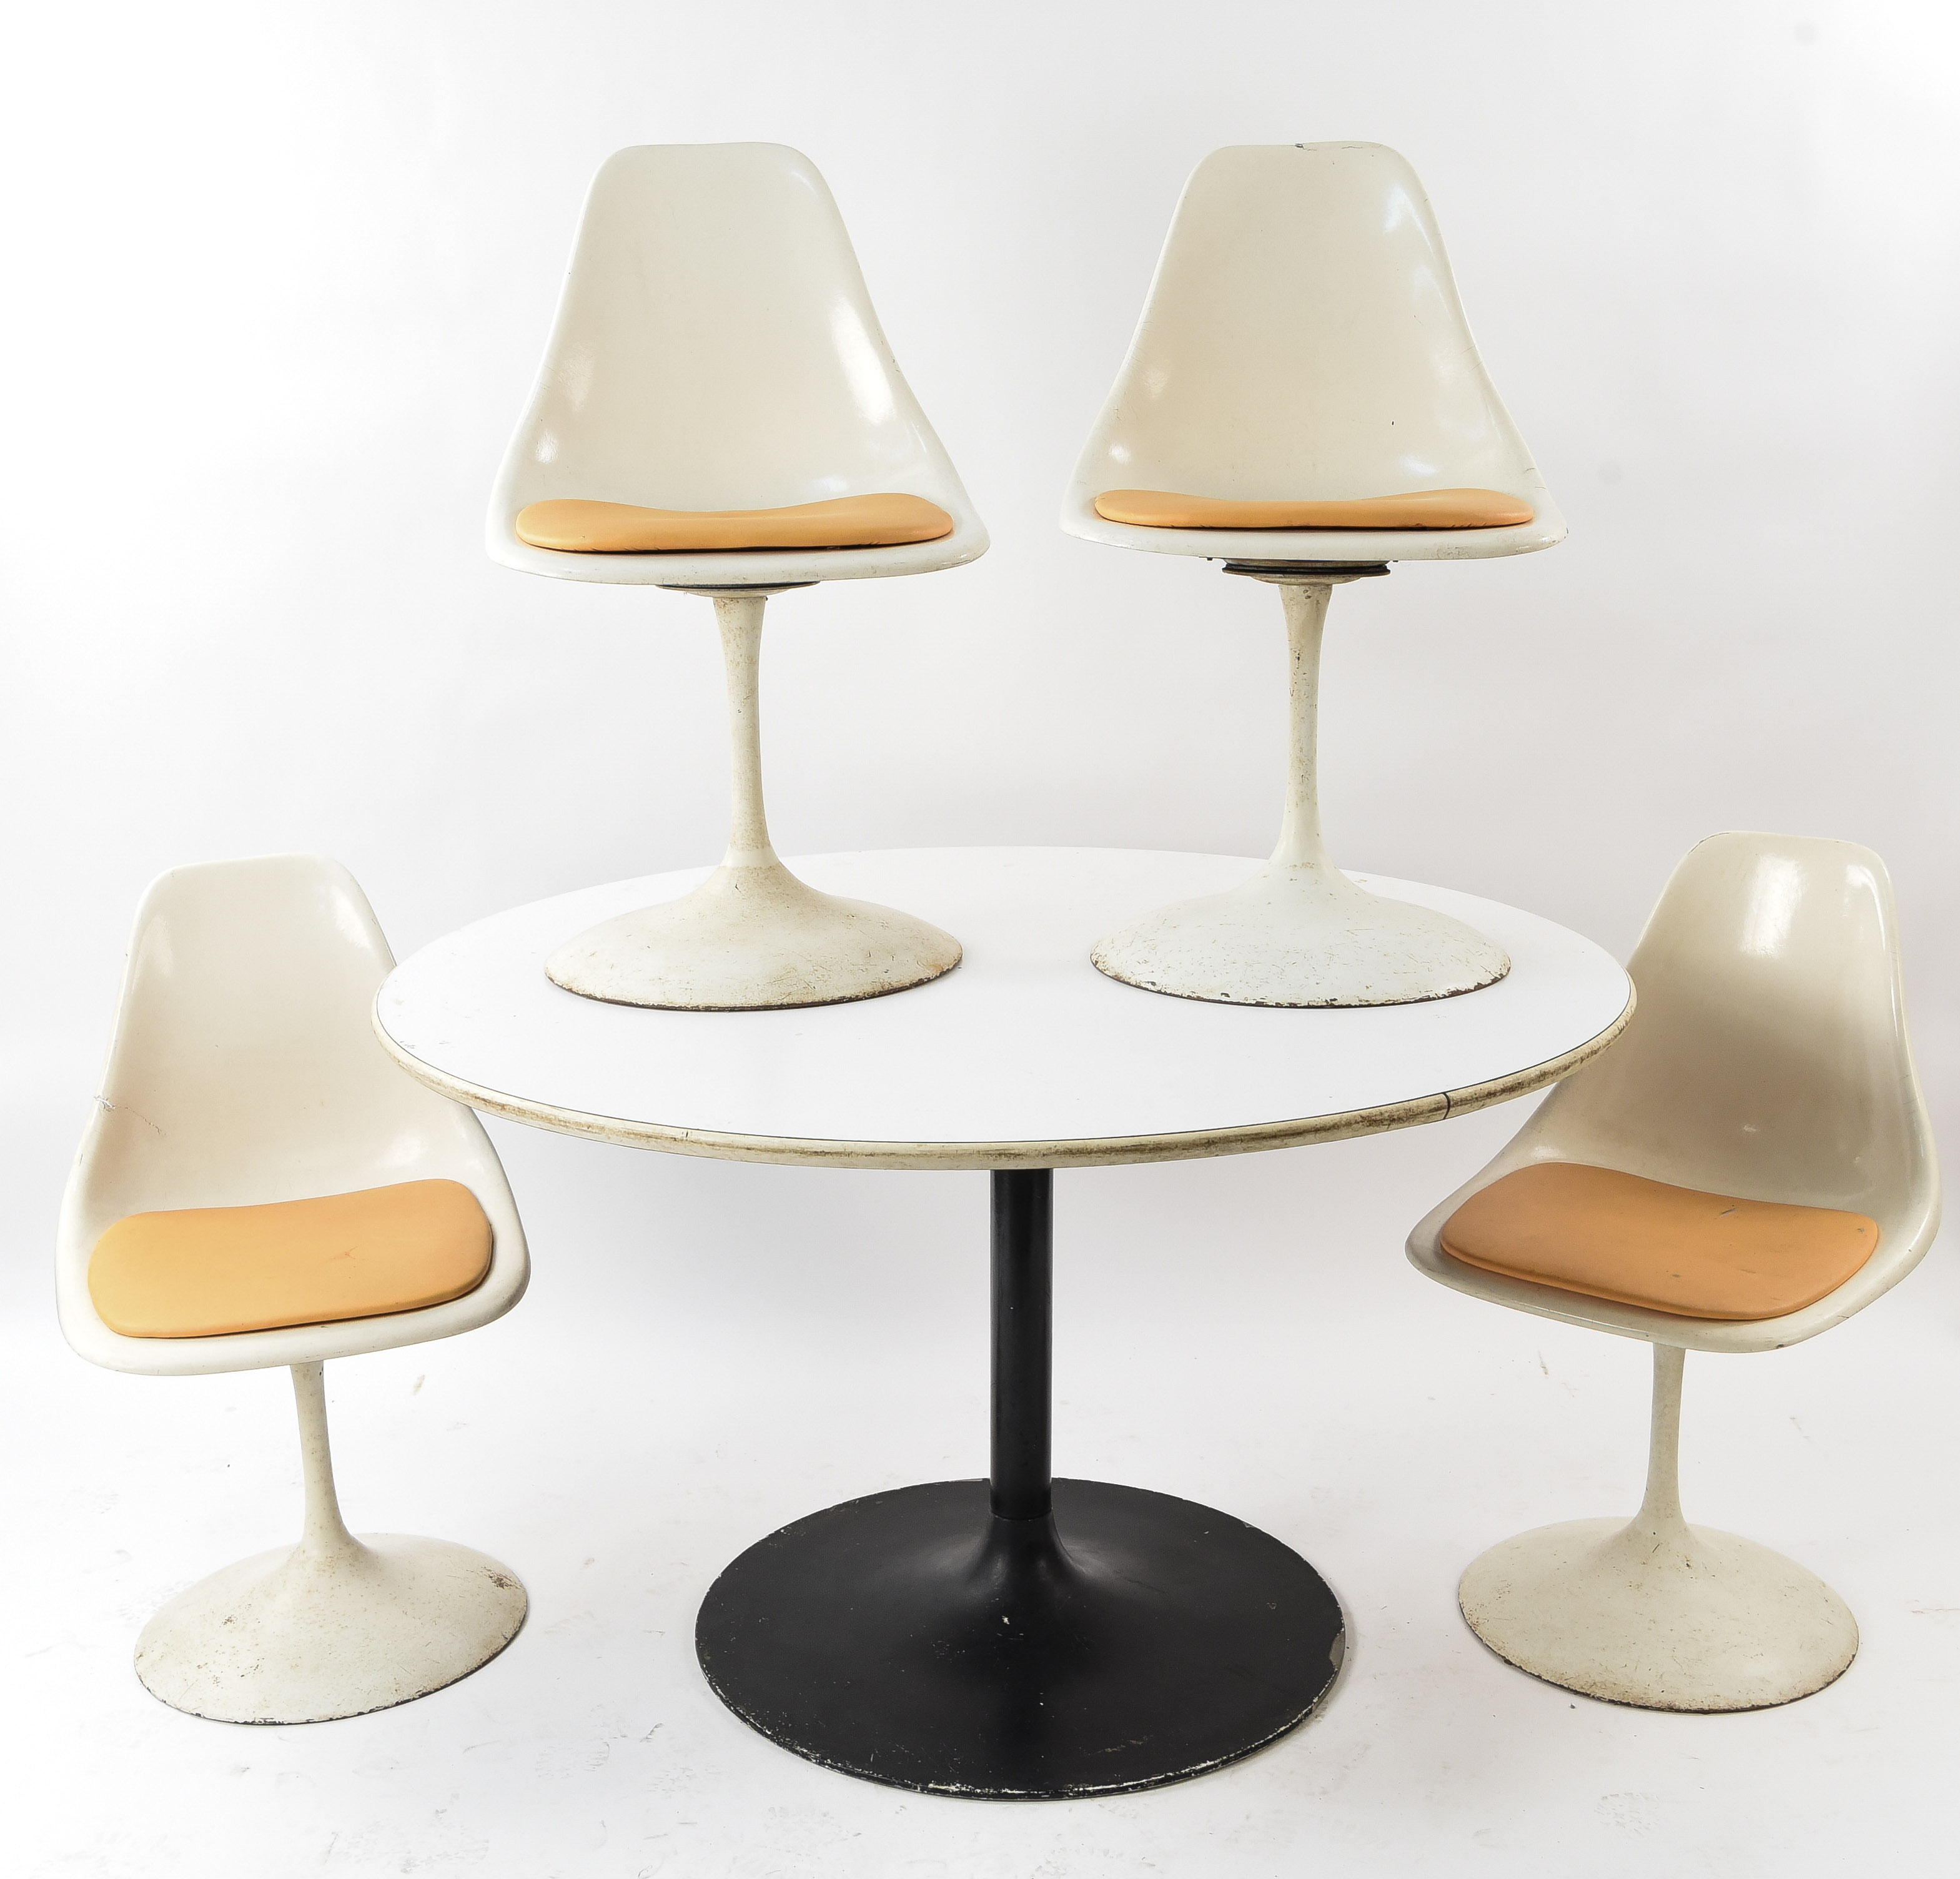 Tulip Table Vintage Saarinen Style Tulip Table And Chairs